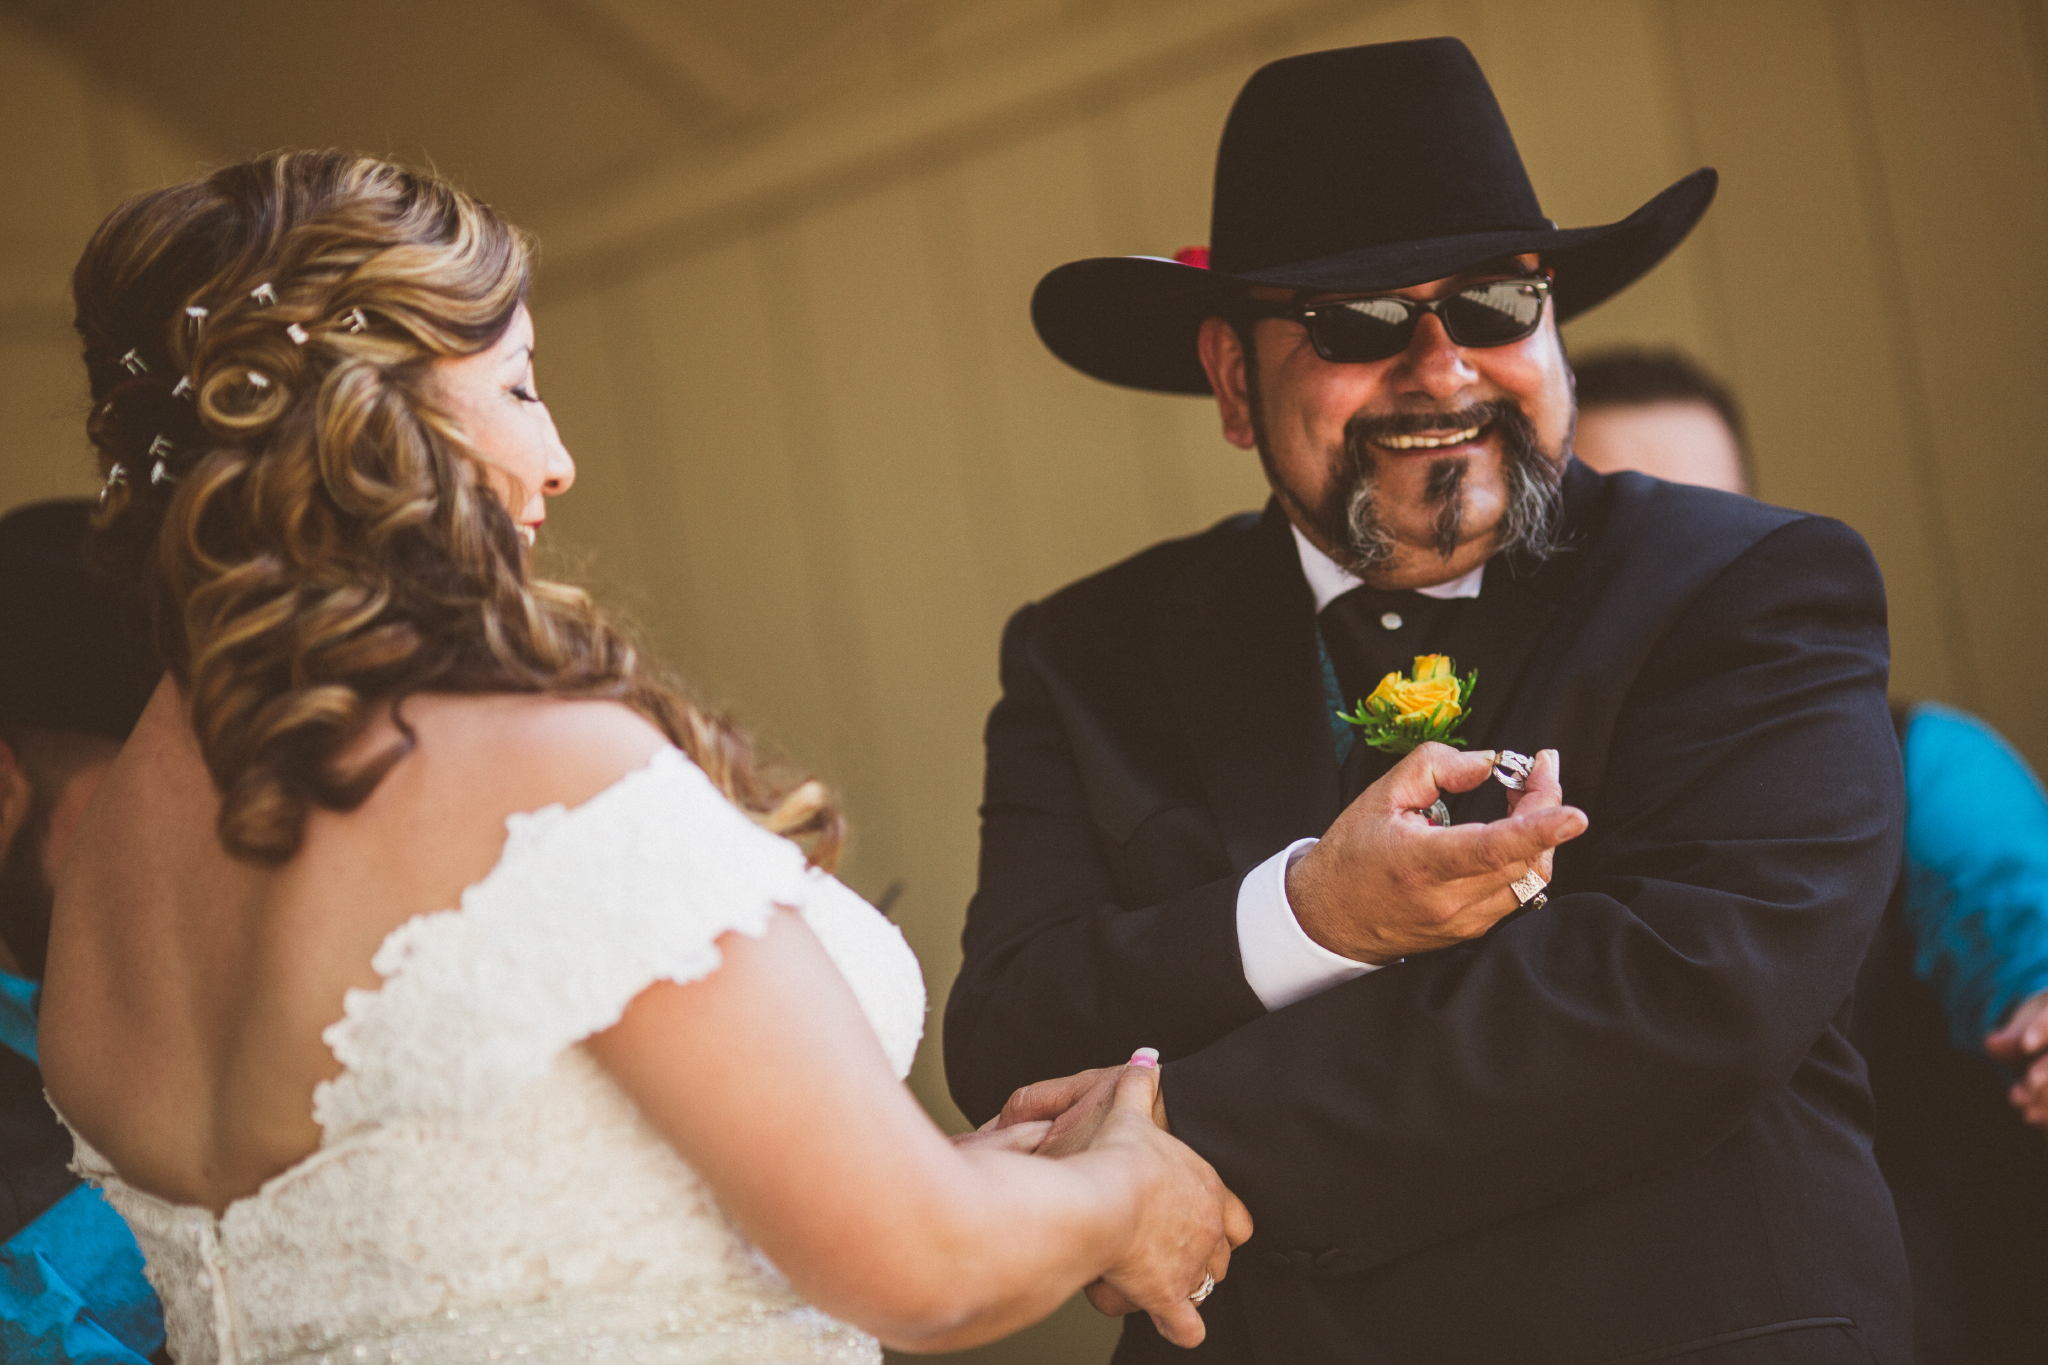 san diego wedding   photographer   groom showing off wedding ring in front of bride